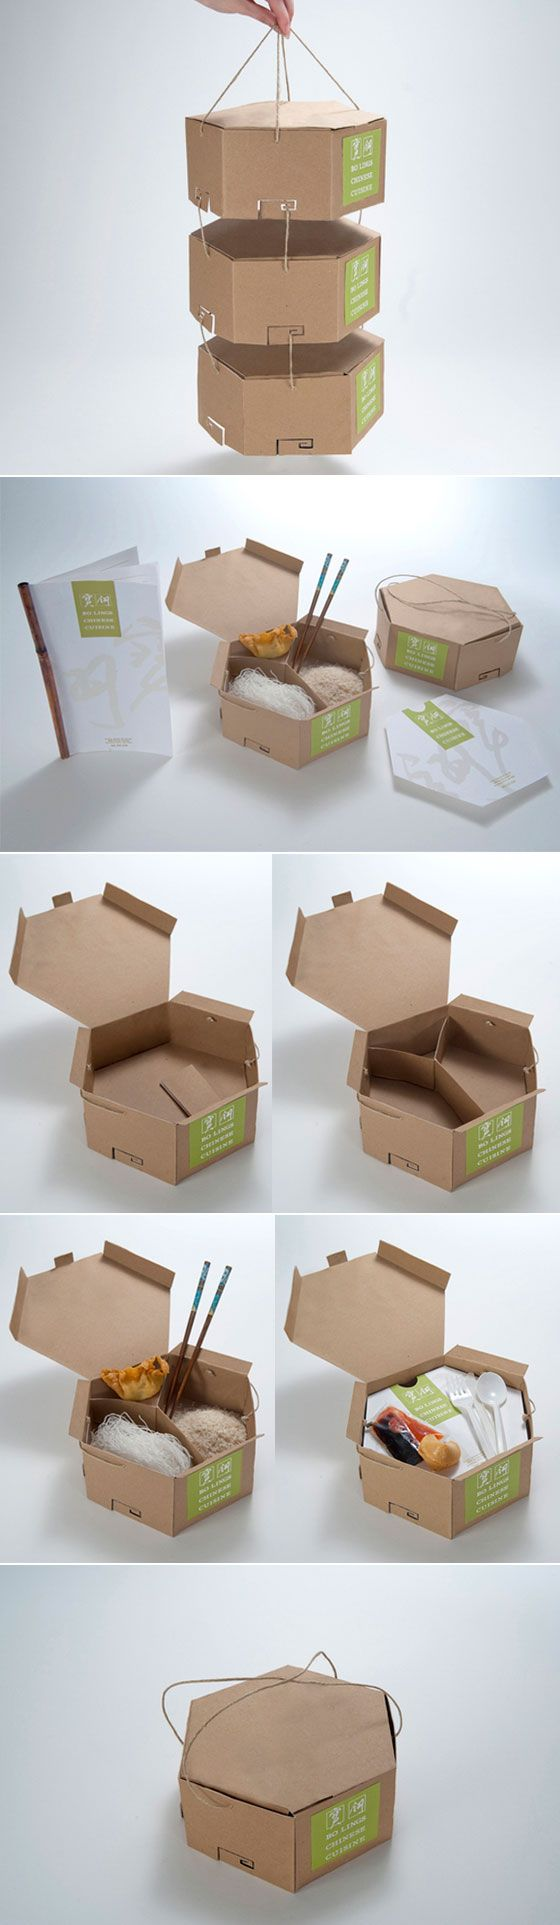 Amazing-Food-Packaging-Designs